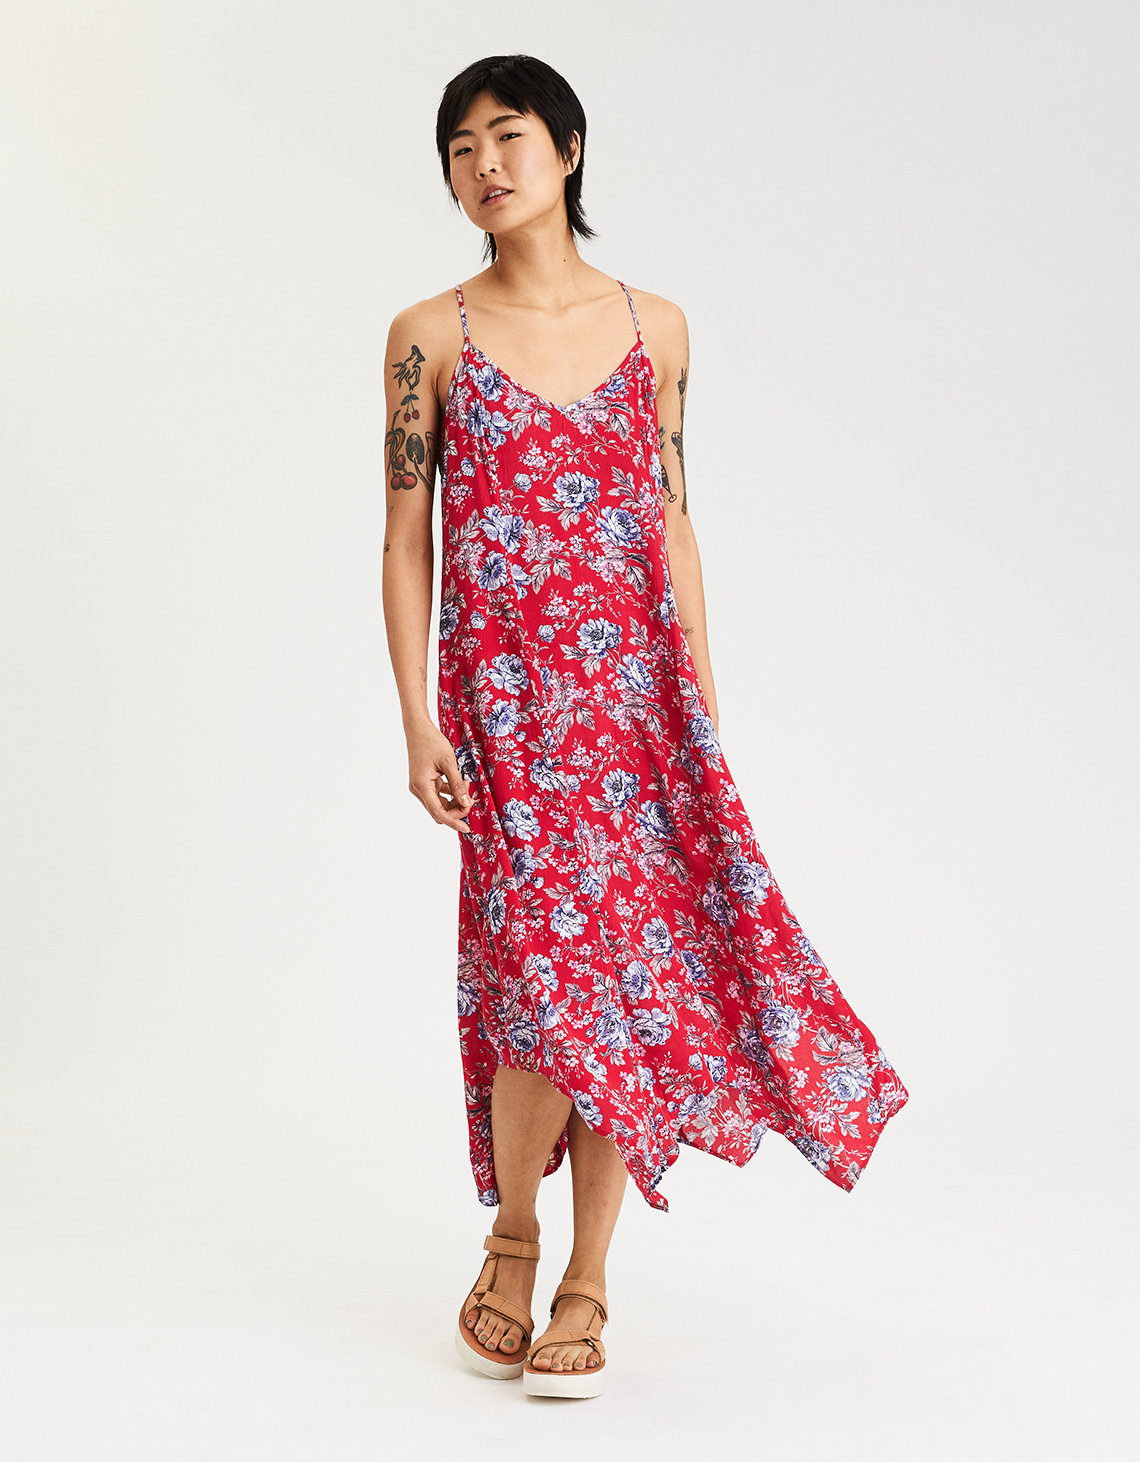 Casual Summer Dresses For People Who Can't Stand Wearing